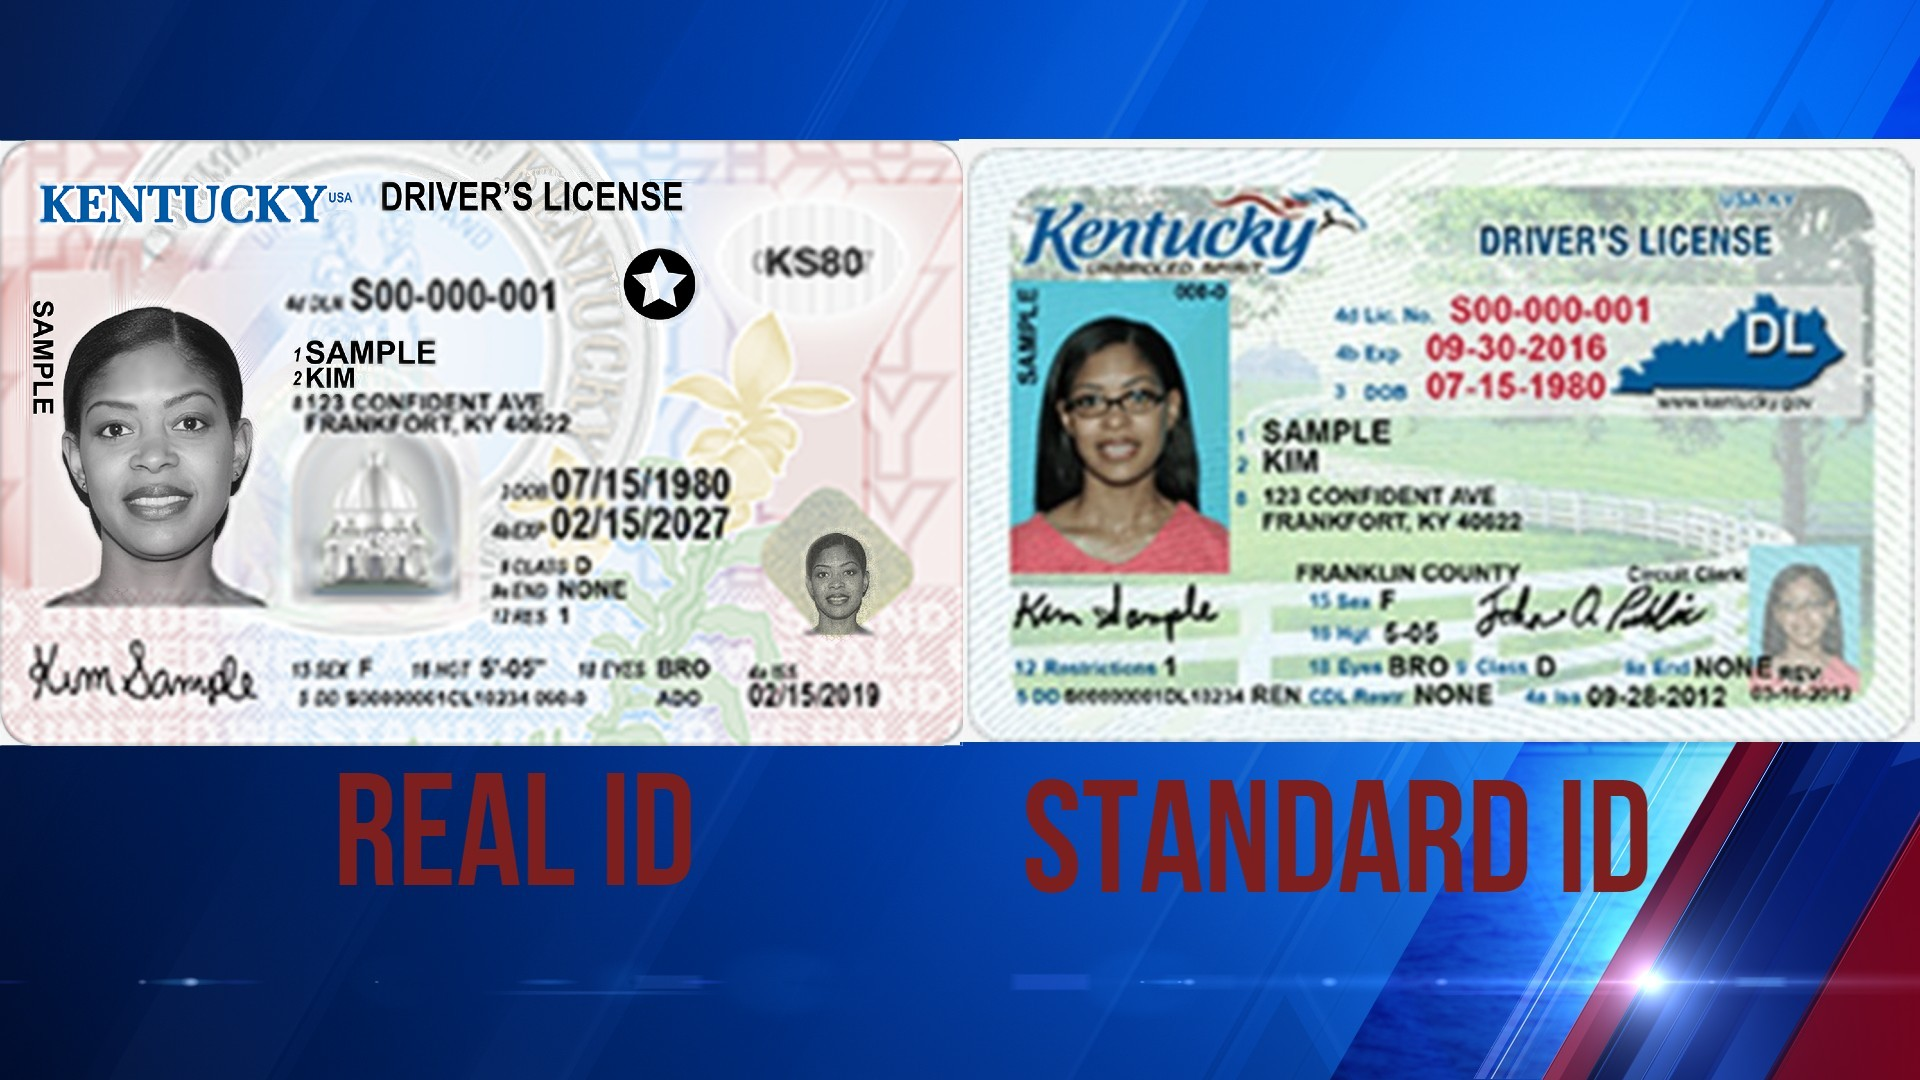 Difference between KY REAL ID and standard driver's license